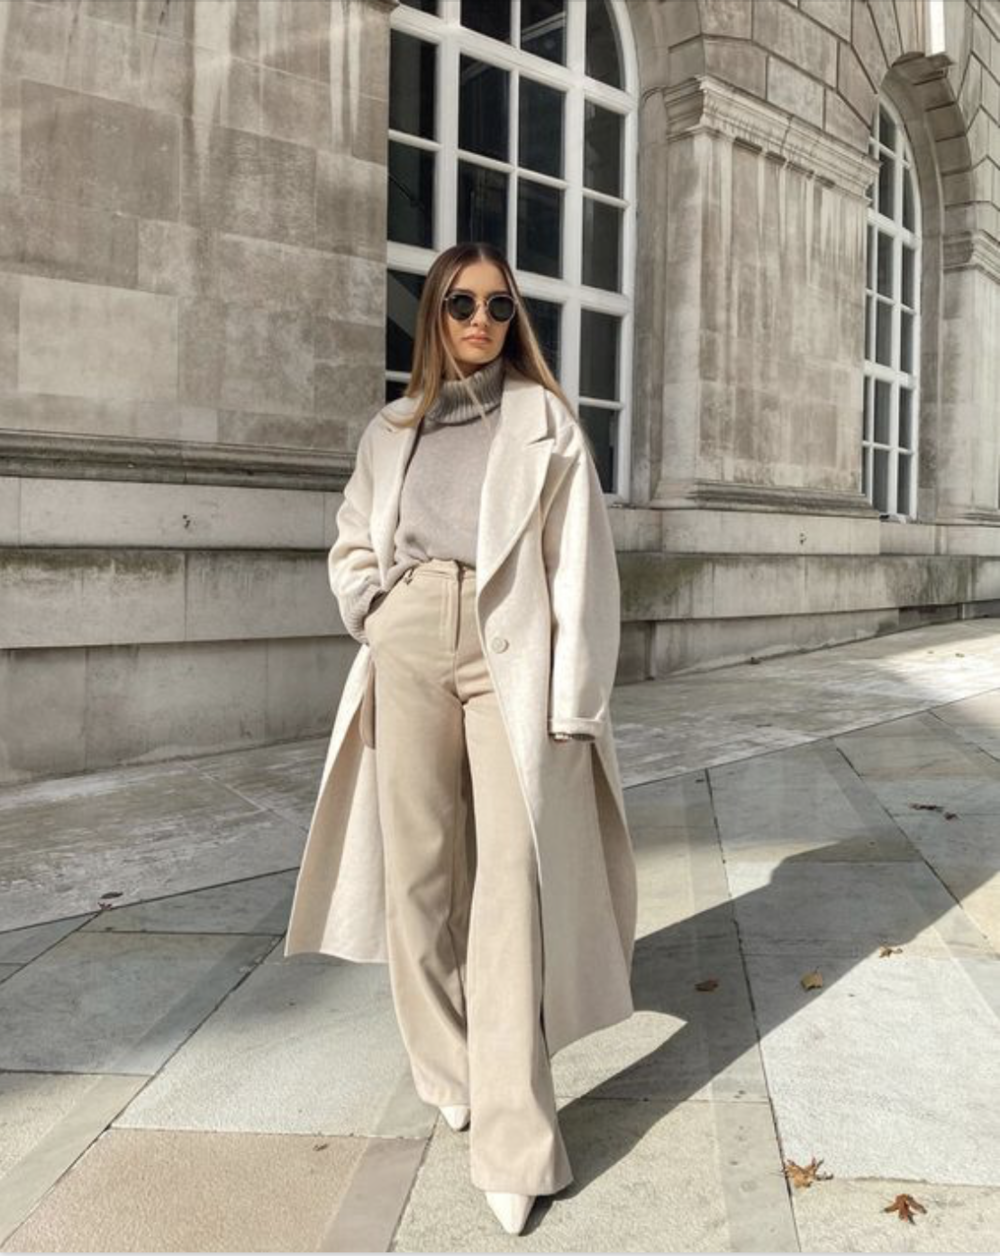 6 Style Essentials for Dressing Cozy and Chic this Winter